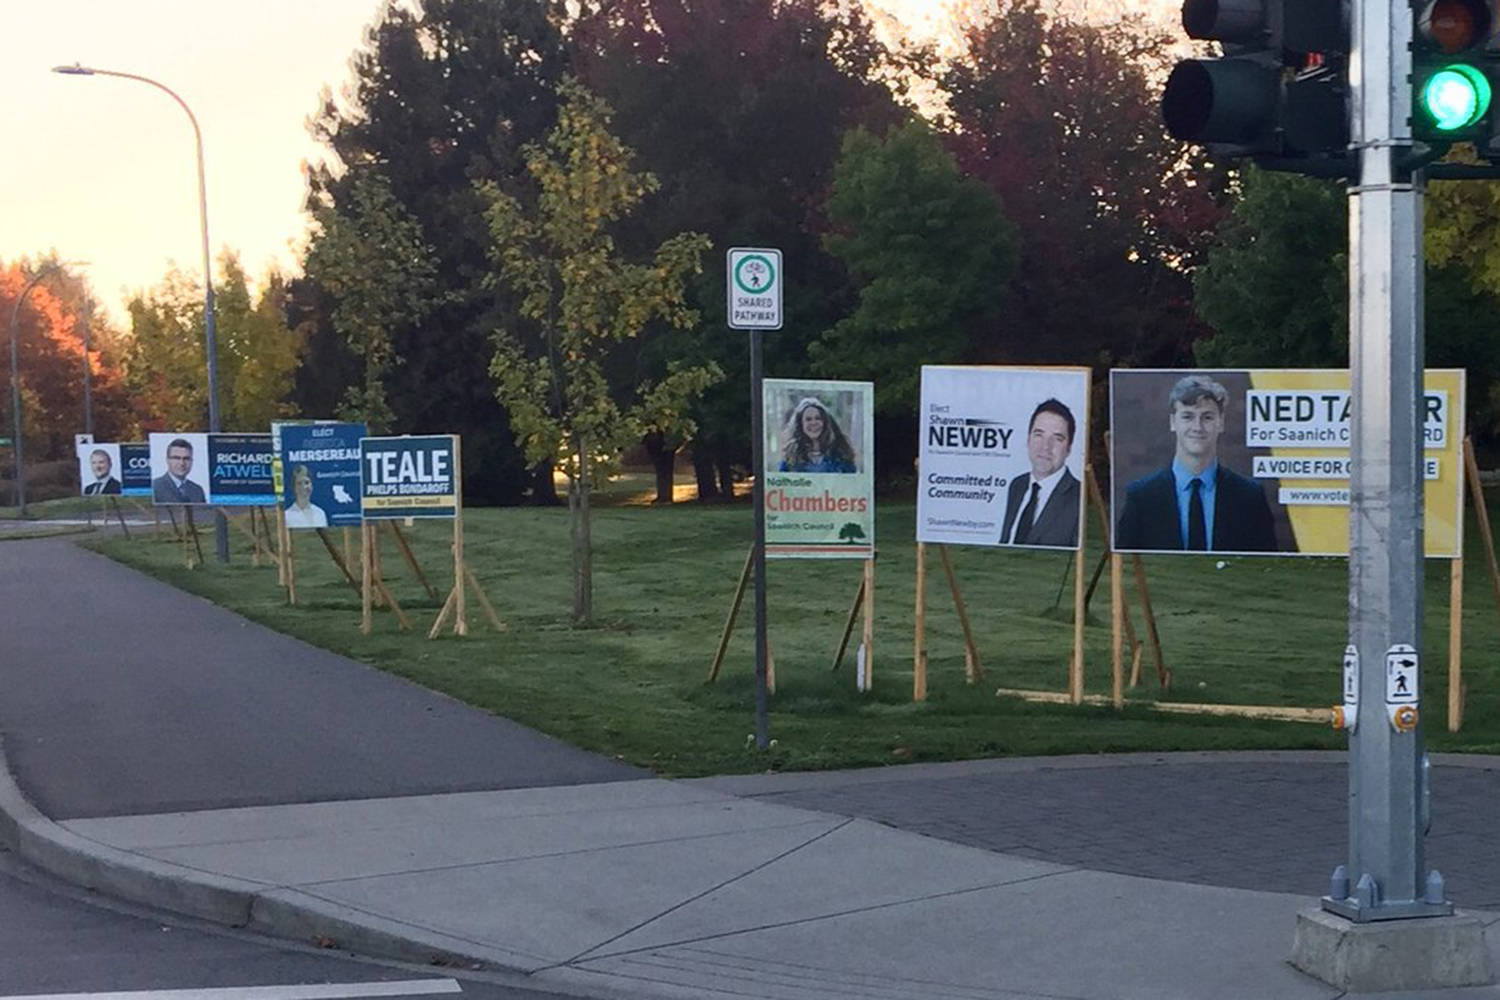 saanich council sounds off on election sign debate saanich news